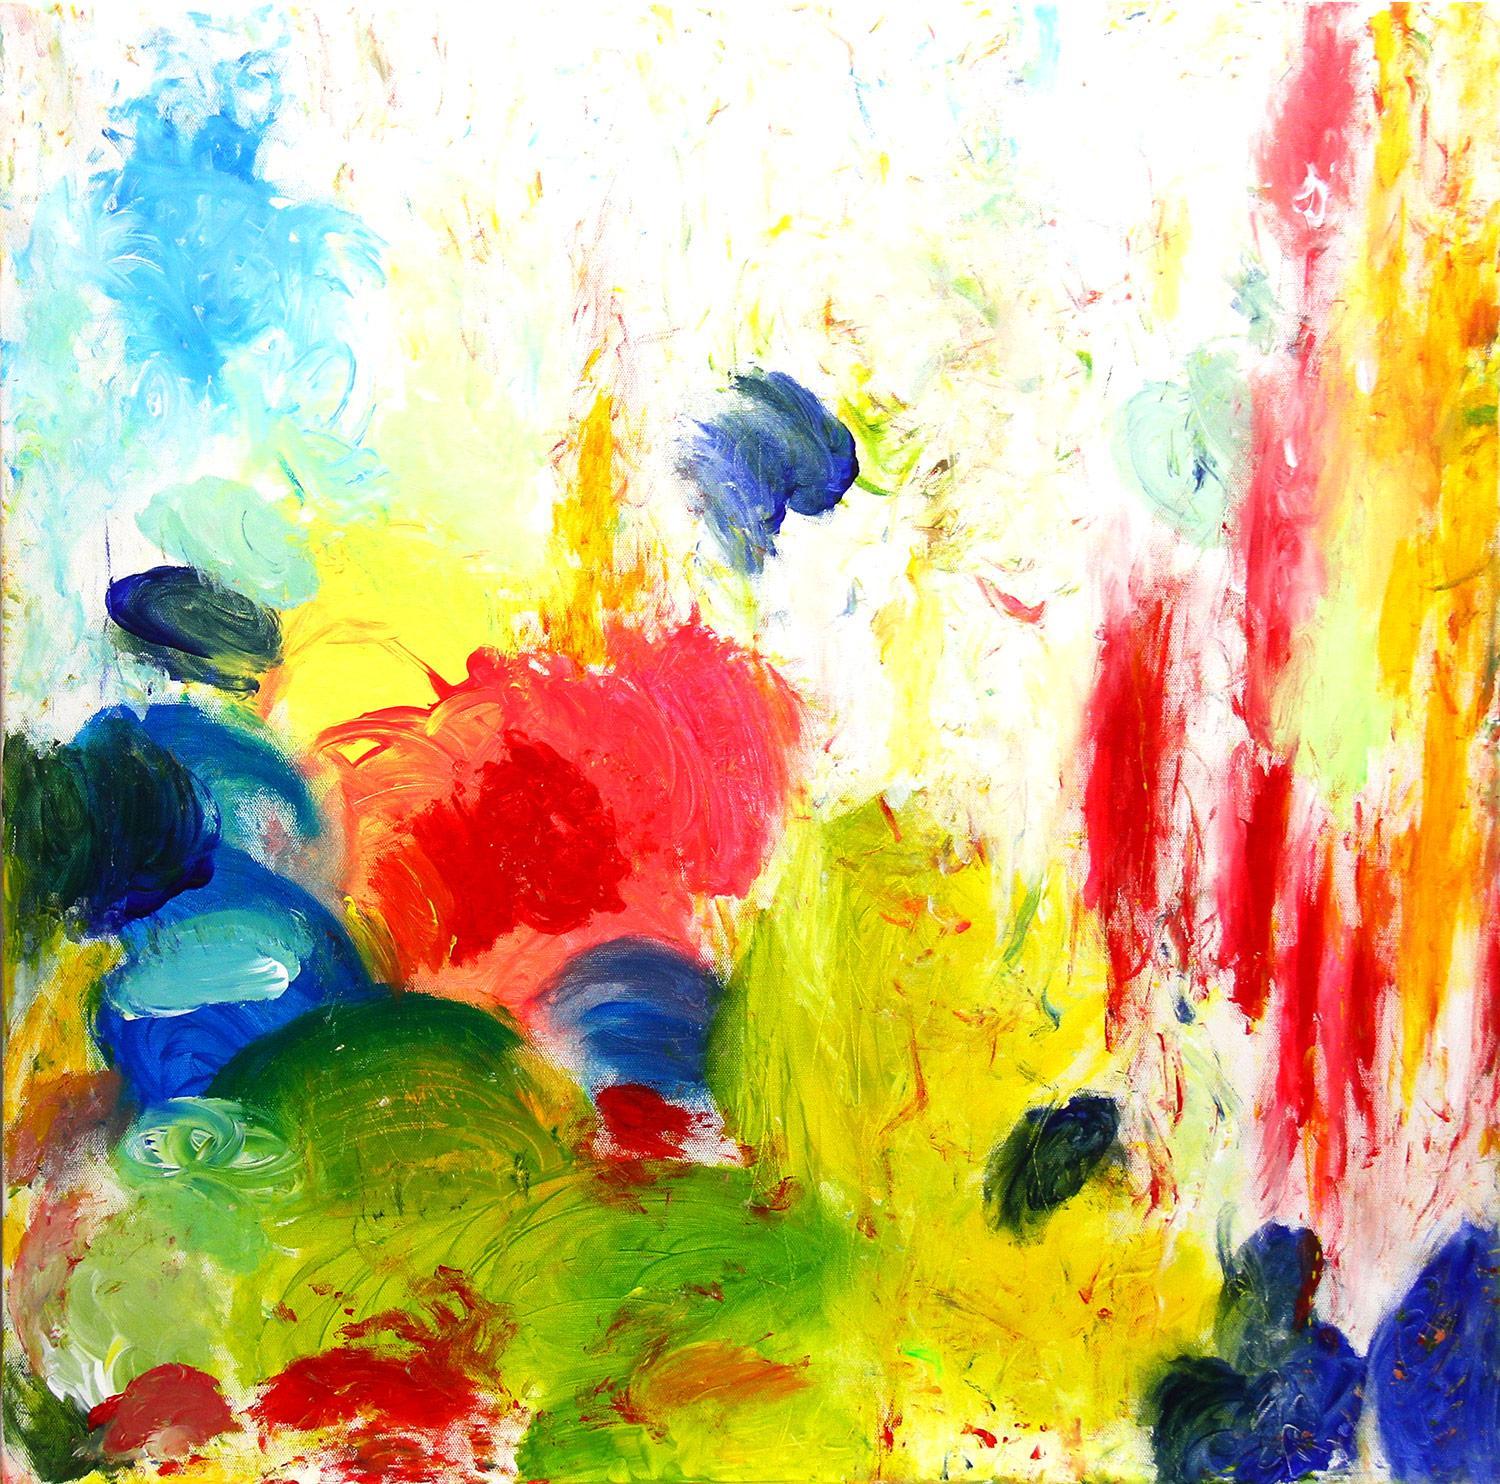 Clouds of Glory Touch Earth, Abstract Contemporary Painting